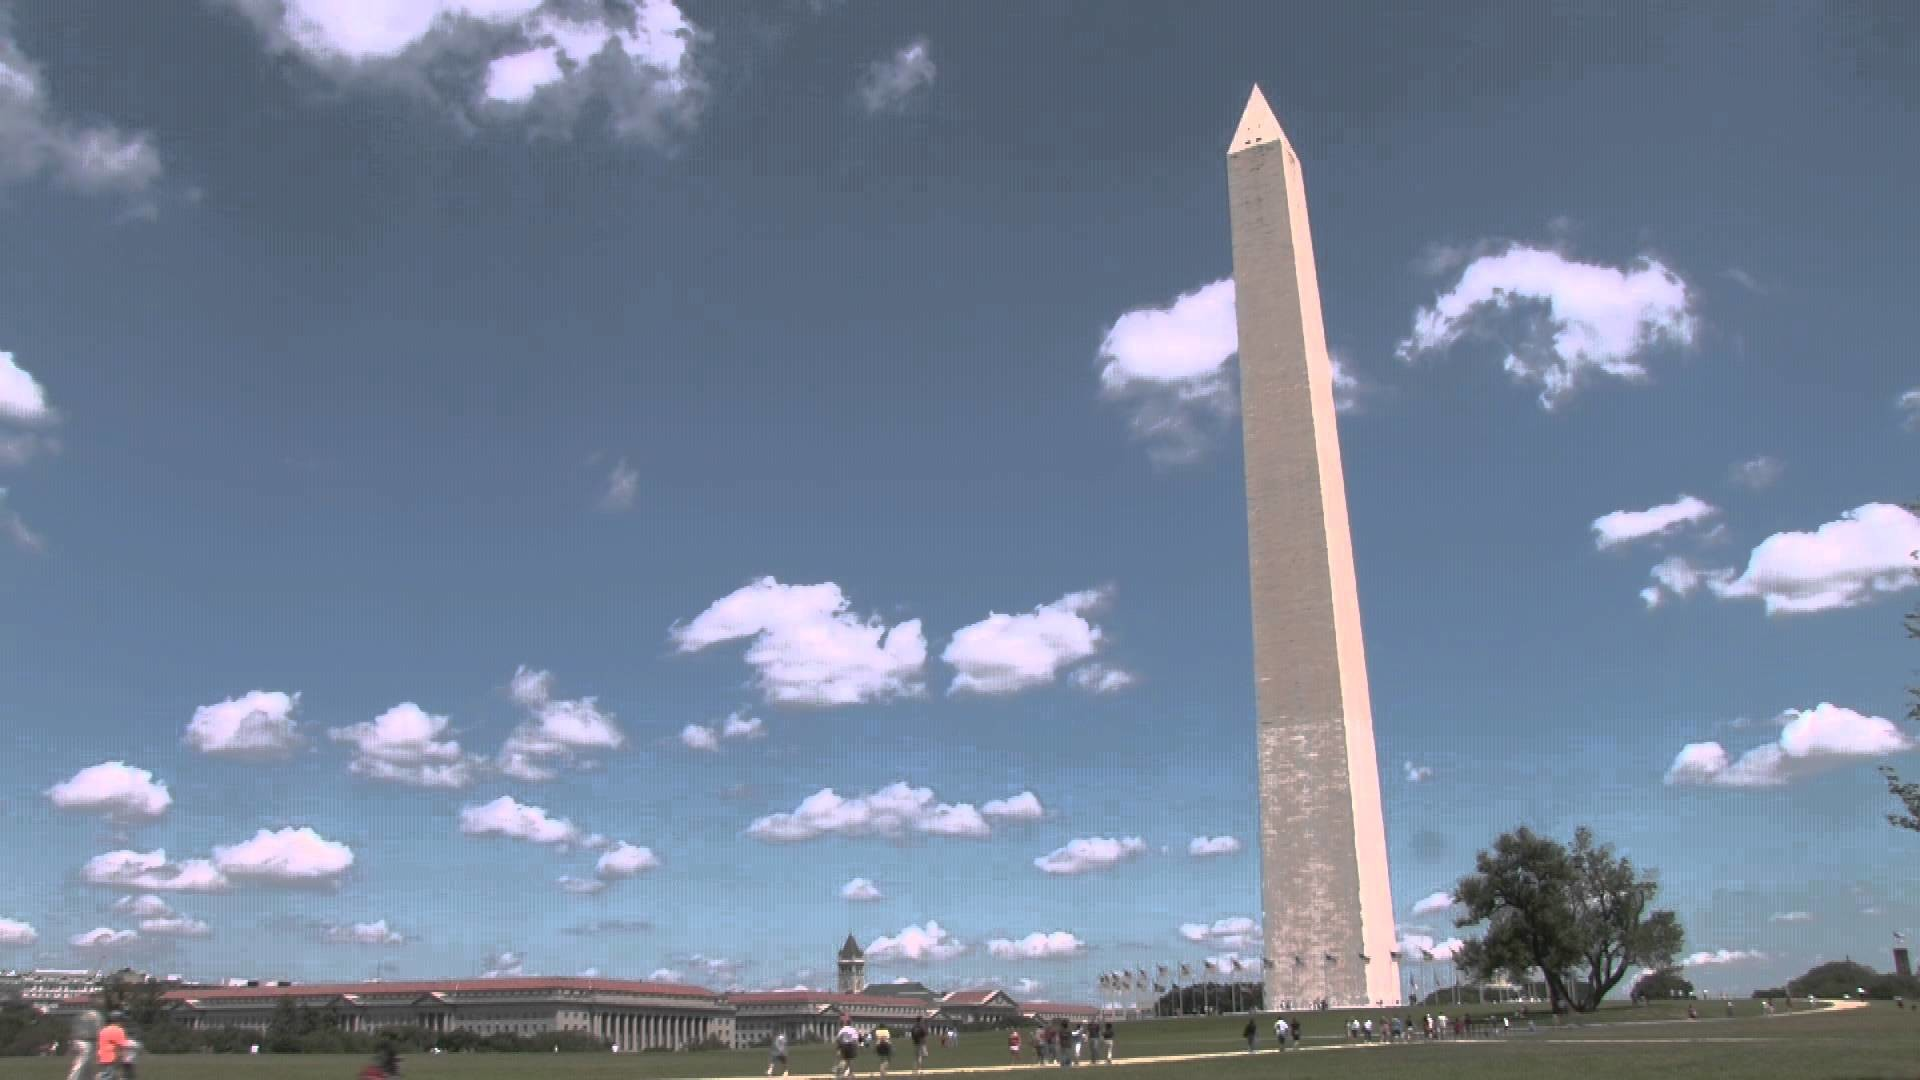 Time Lapse Washington DC HD Video of National Mall Washington Monument  Tourists and Visitors to US